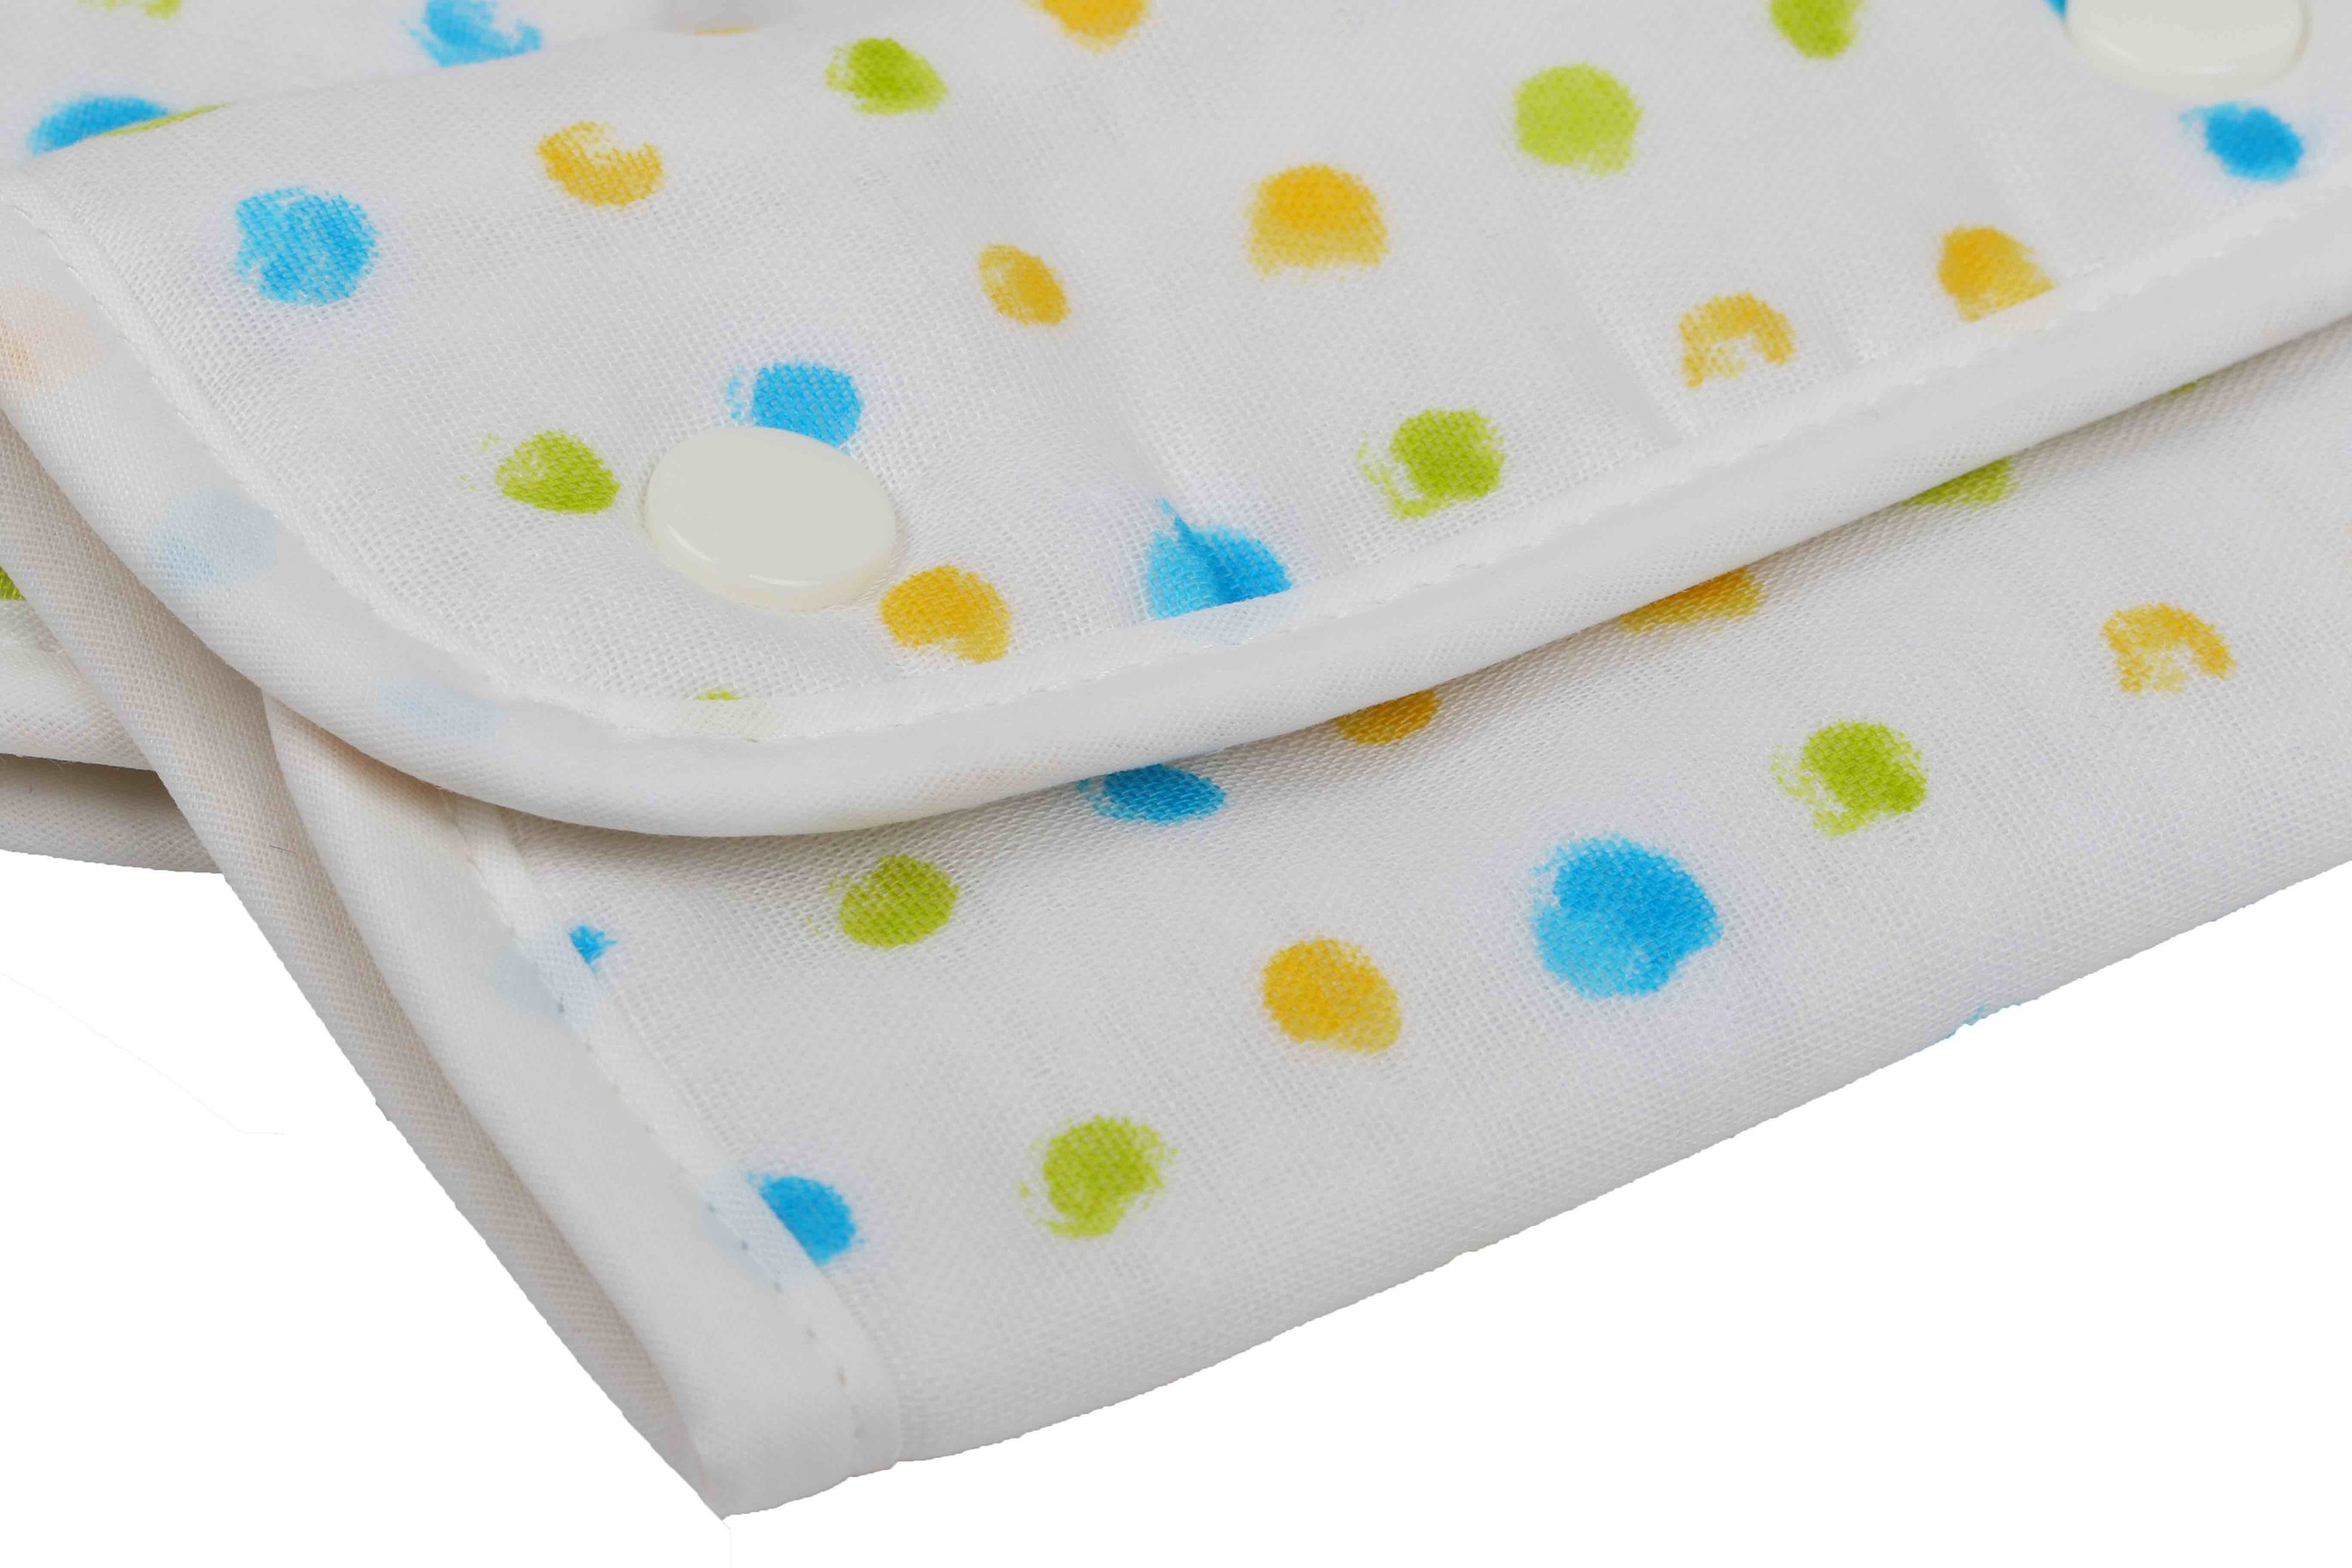 Buddy Buddy Teething Pad - Handwriting dot (Blue)